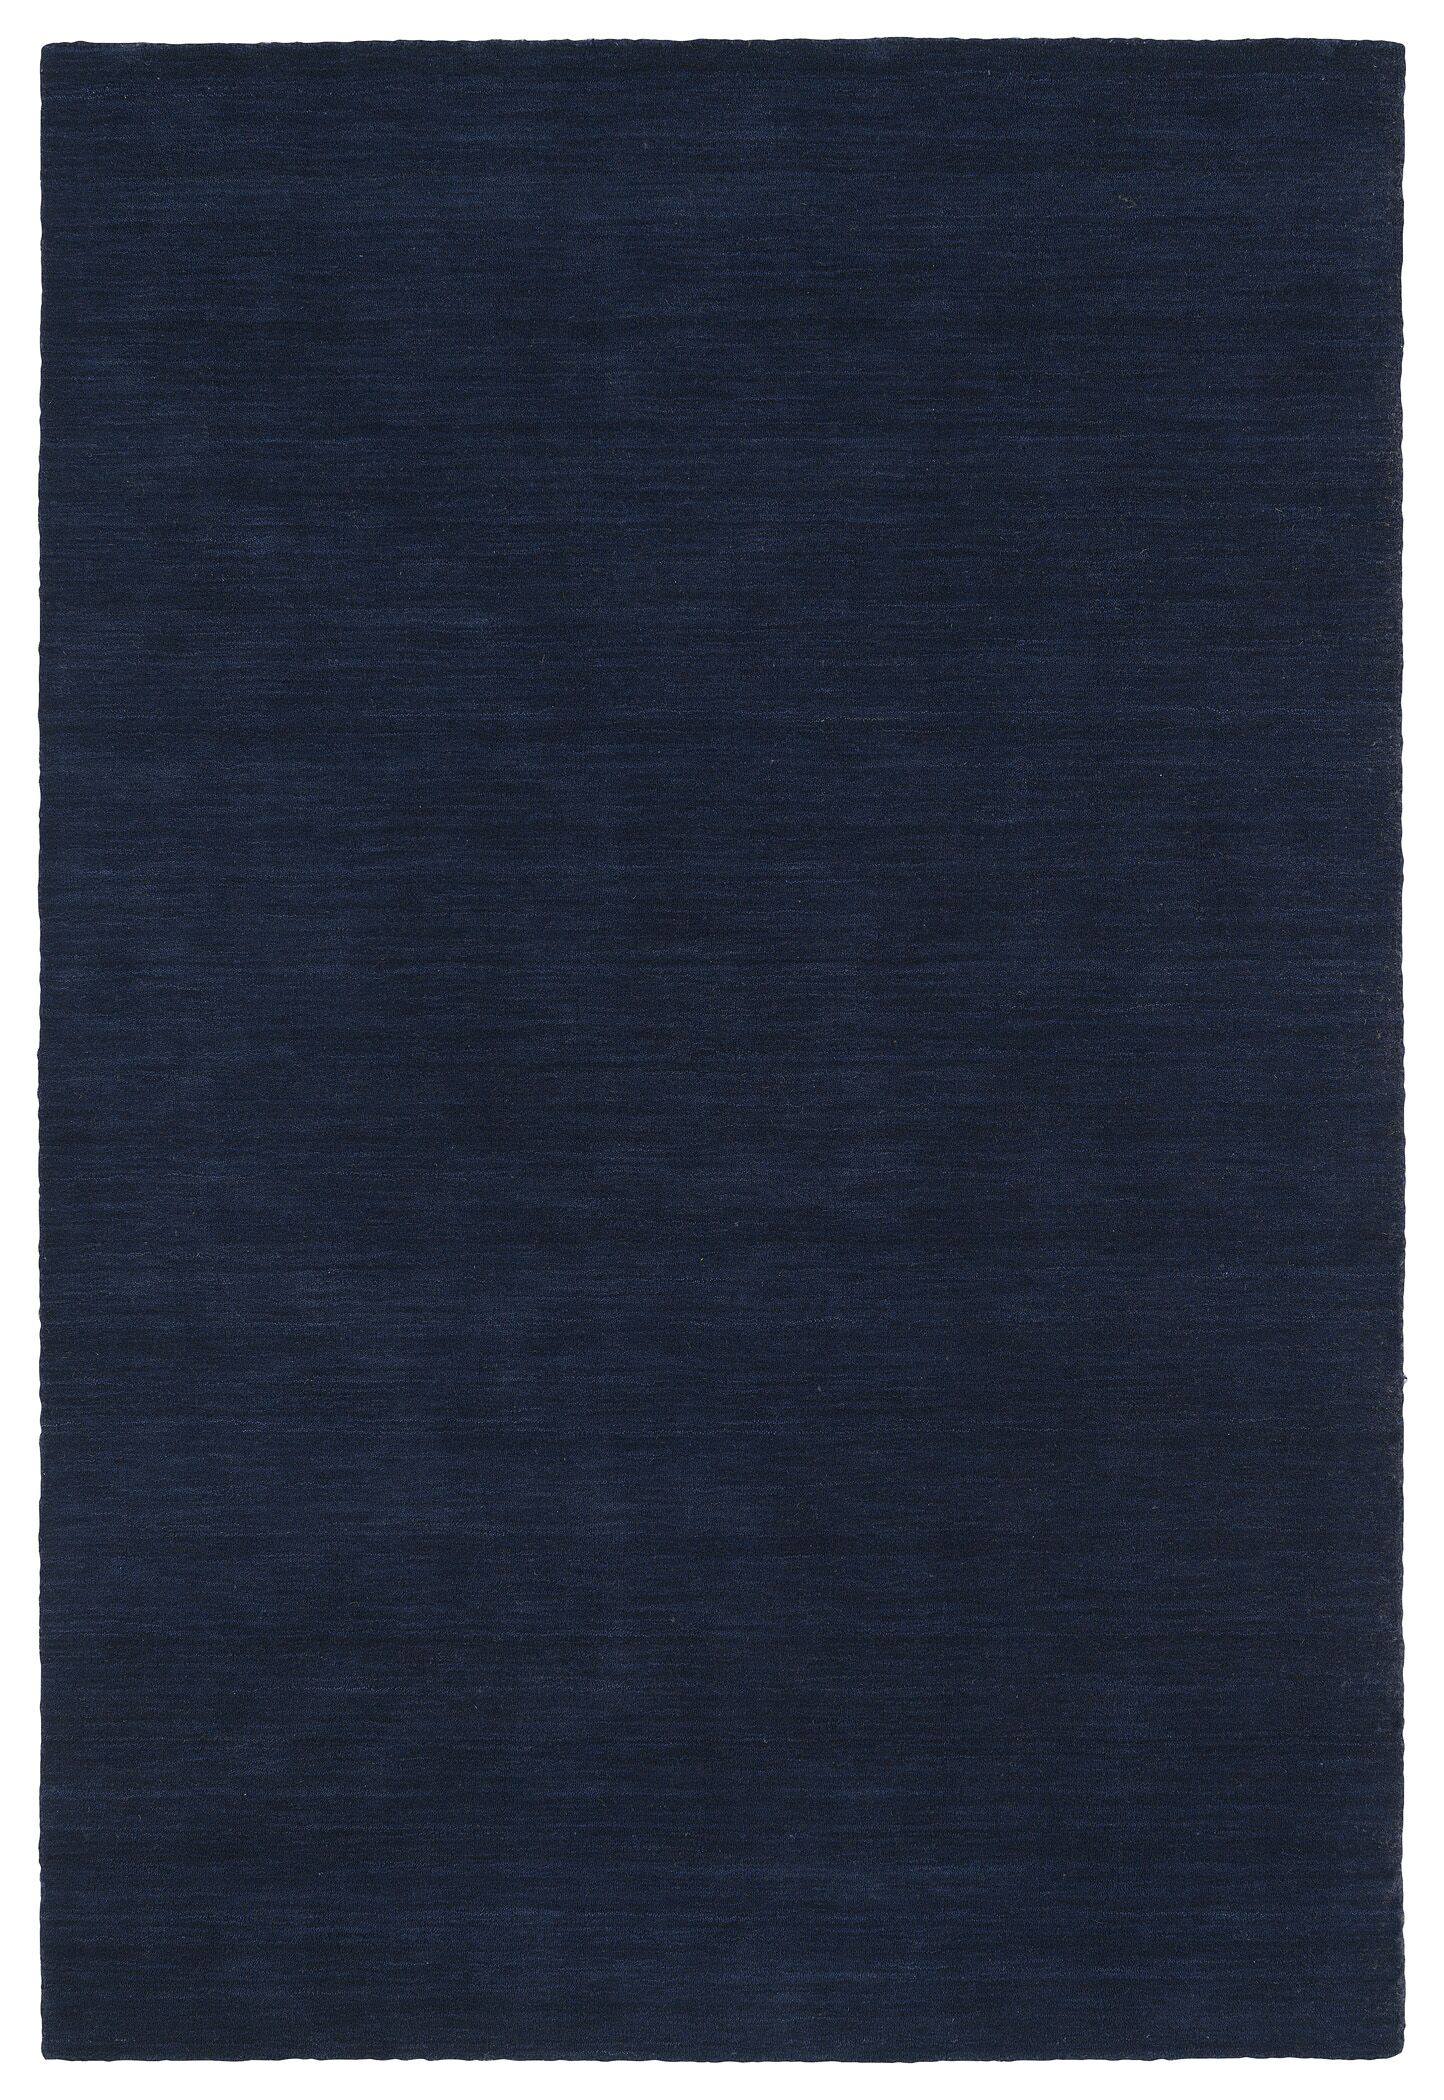 McCabe Hand-Loomed Navy Area Rug Rug Size: Rectangle 5' x 7'6